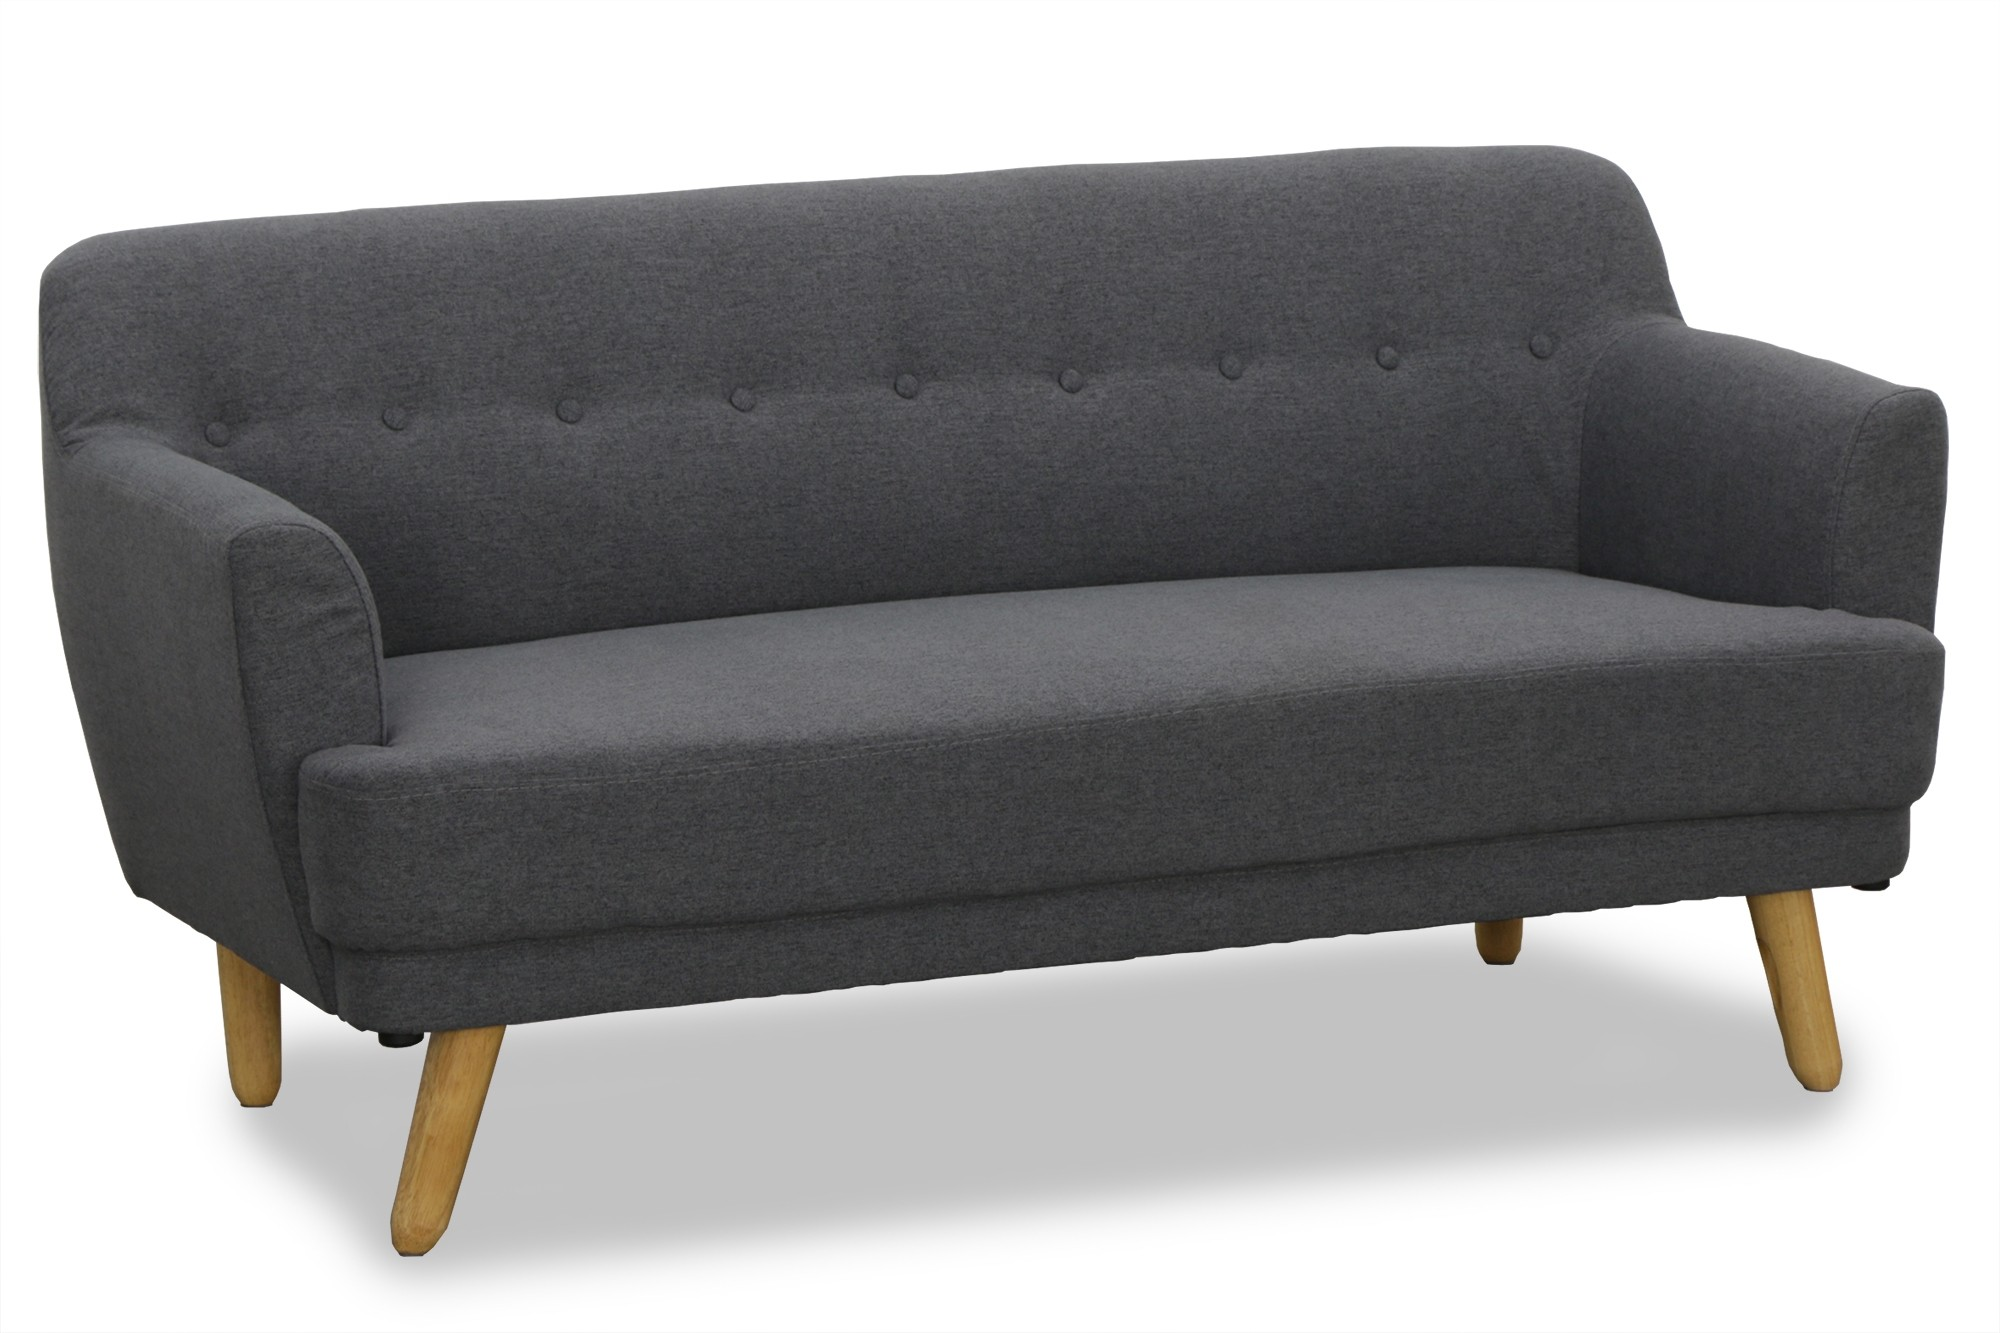 haruki 2 seater sofa furniture home d cor fortytwo rh fortytwo sg two seater sofa sale two seater sofa sale